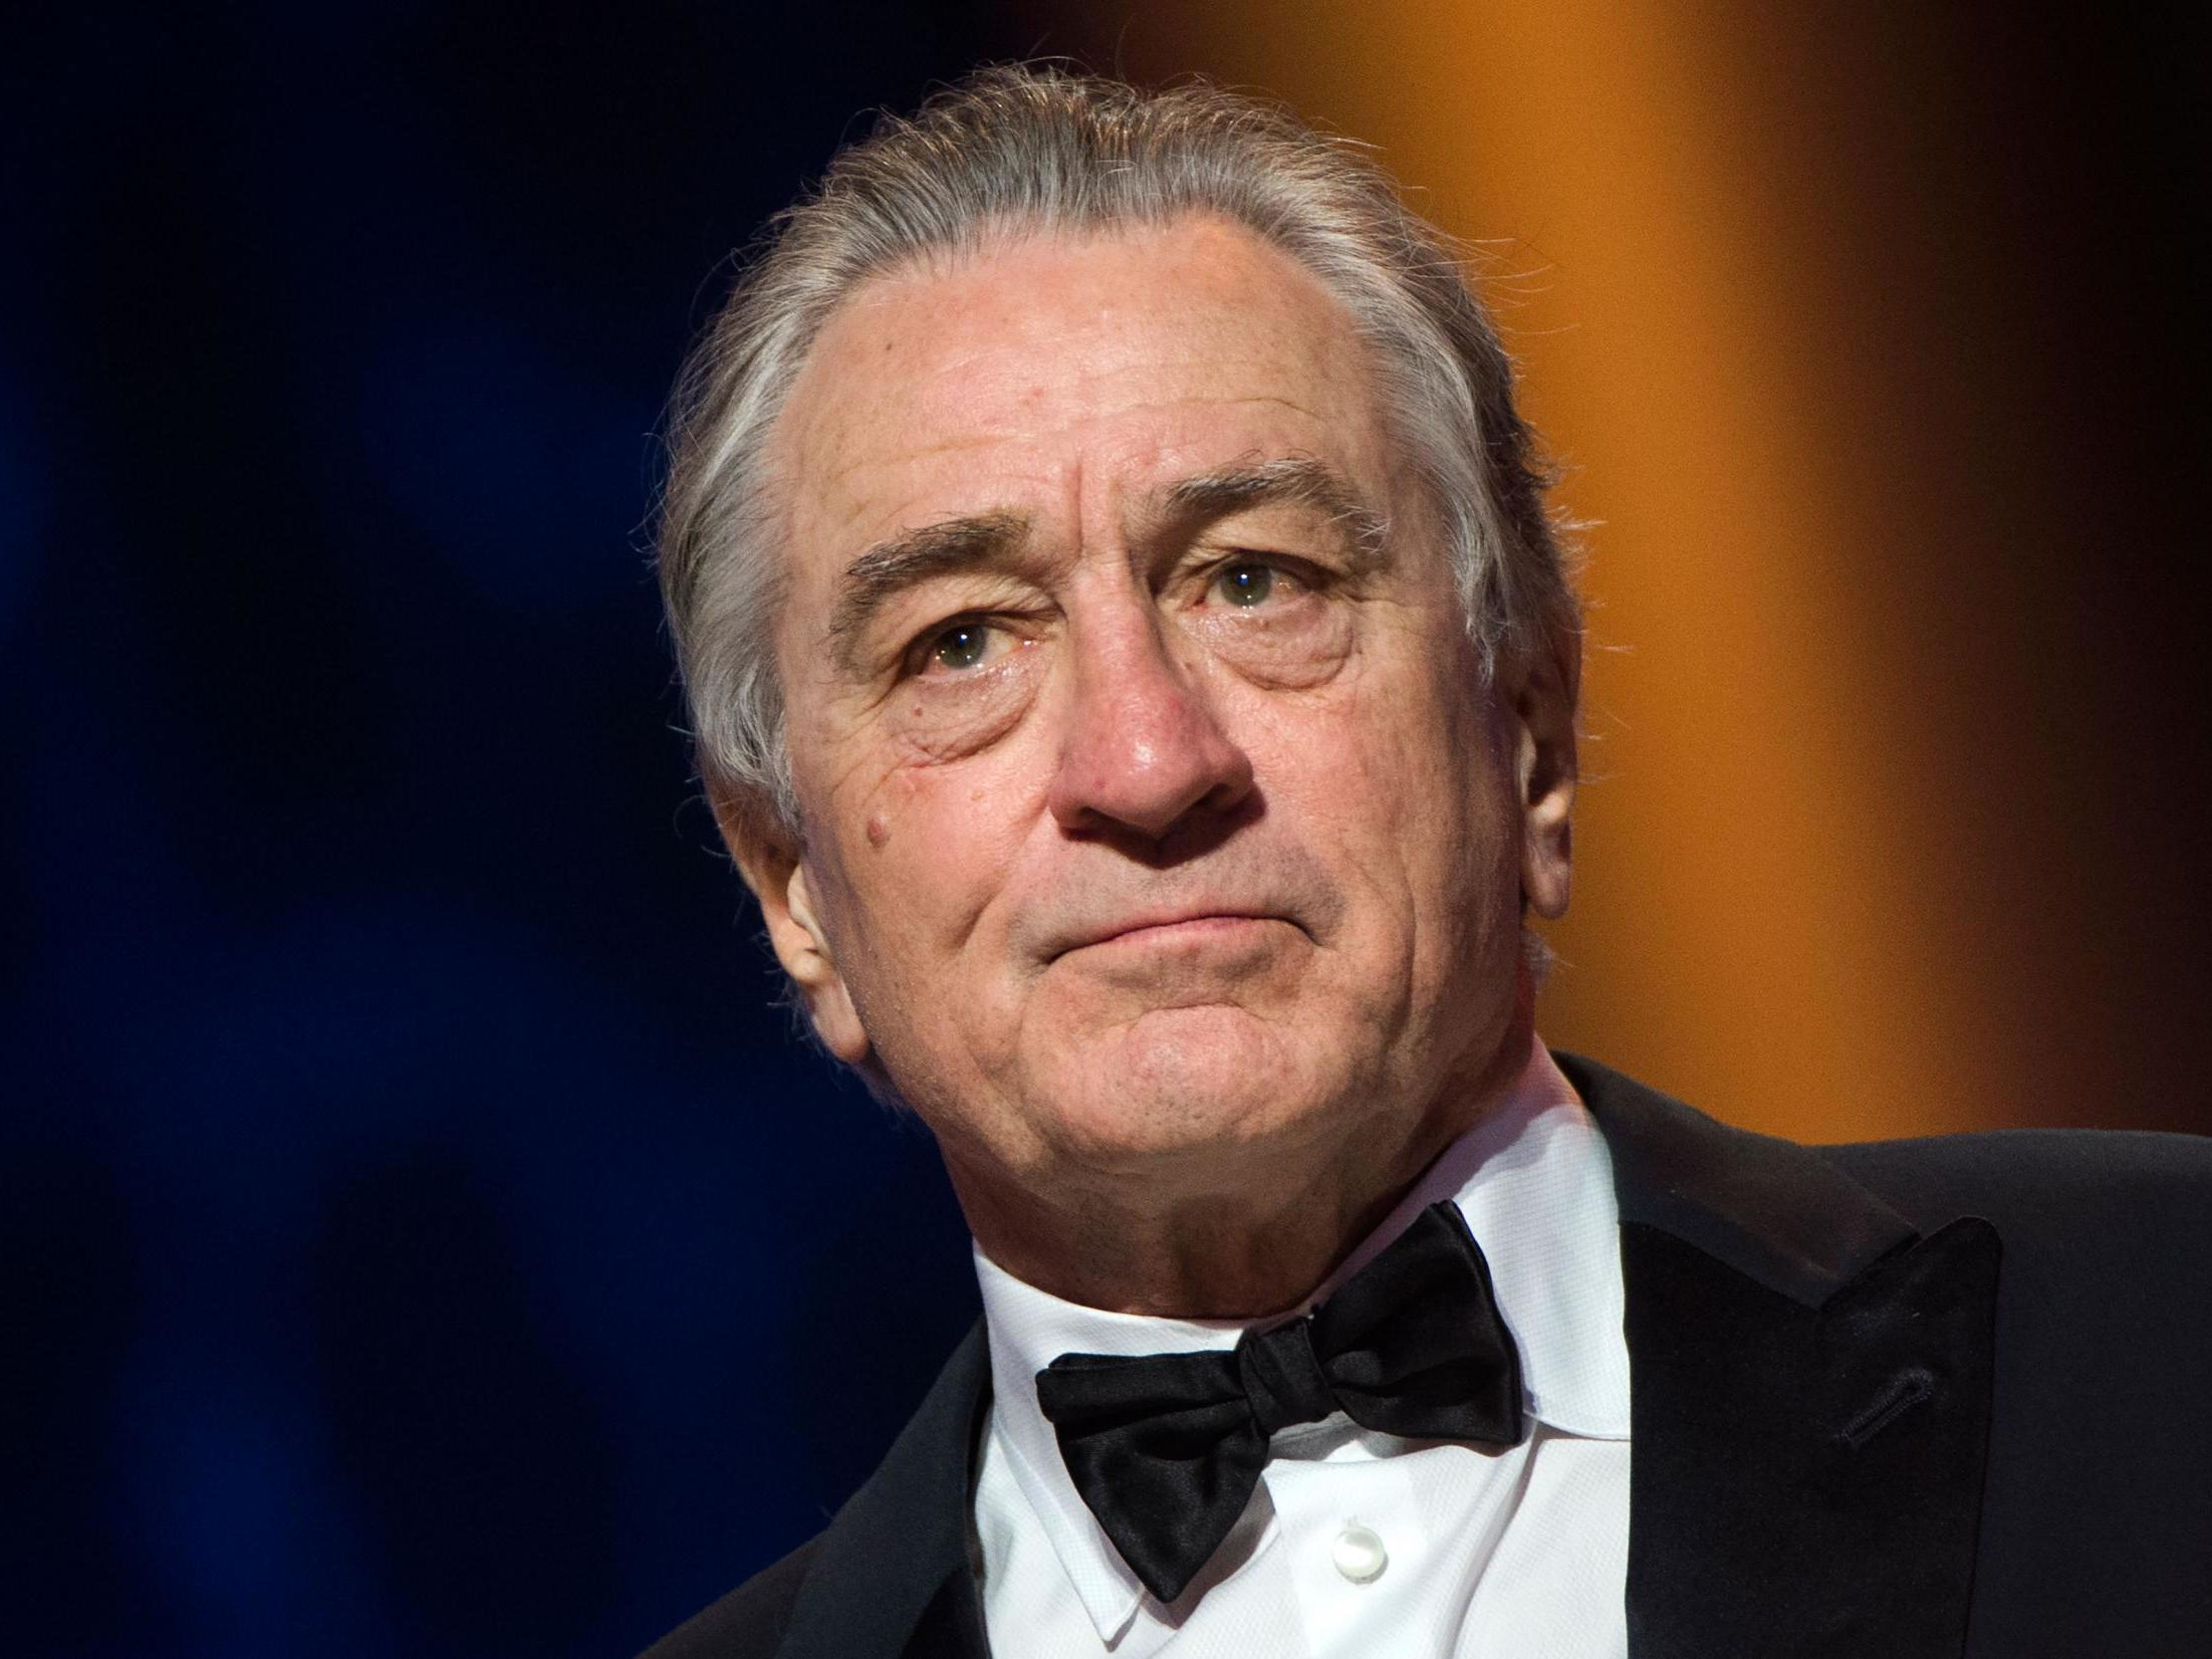 List Of Robert De Niro Movies Ranked From Best To Worst